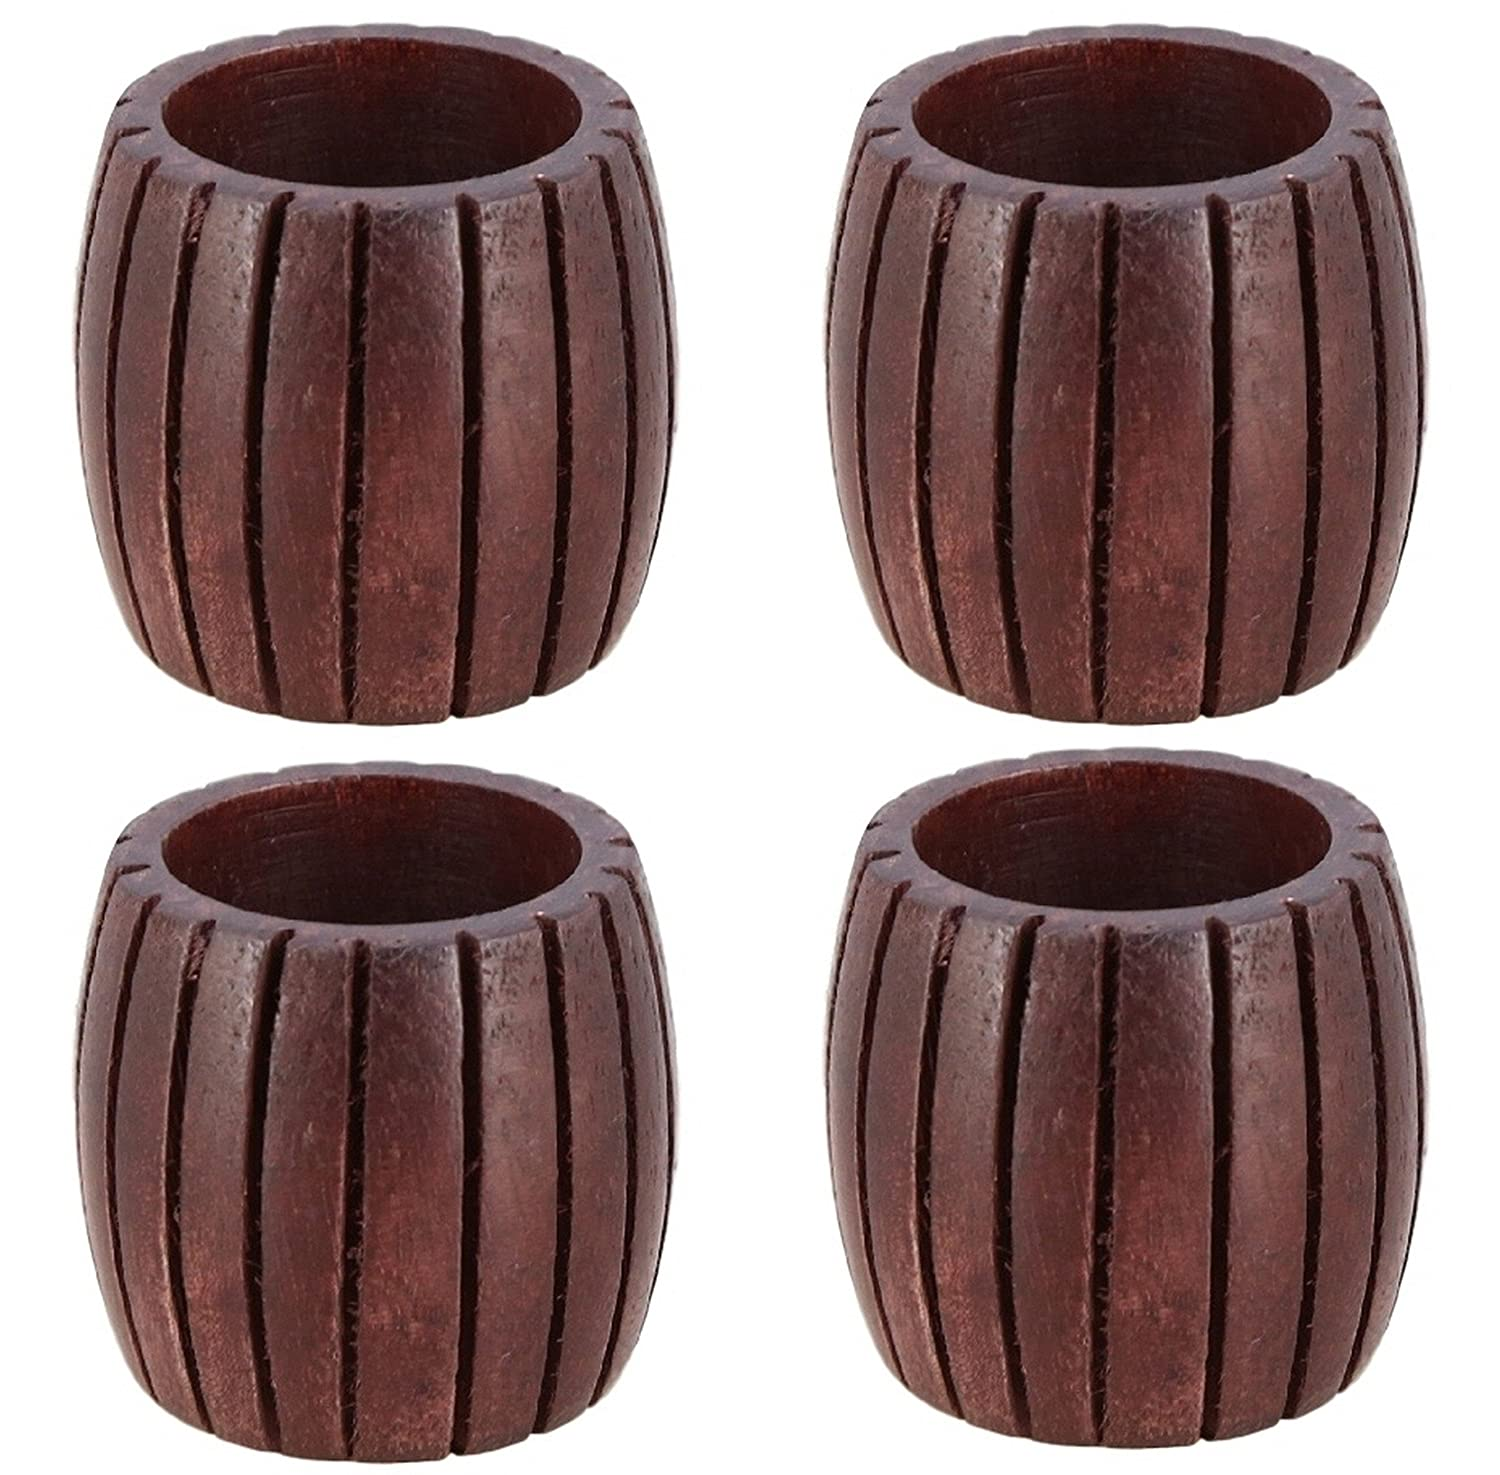 CW- 02-4 ARN Craft Handcrafted Grooved Wood Napkin Rings Set of 4 for Wedding Party Decoration